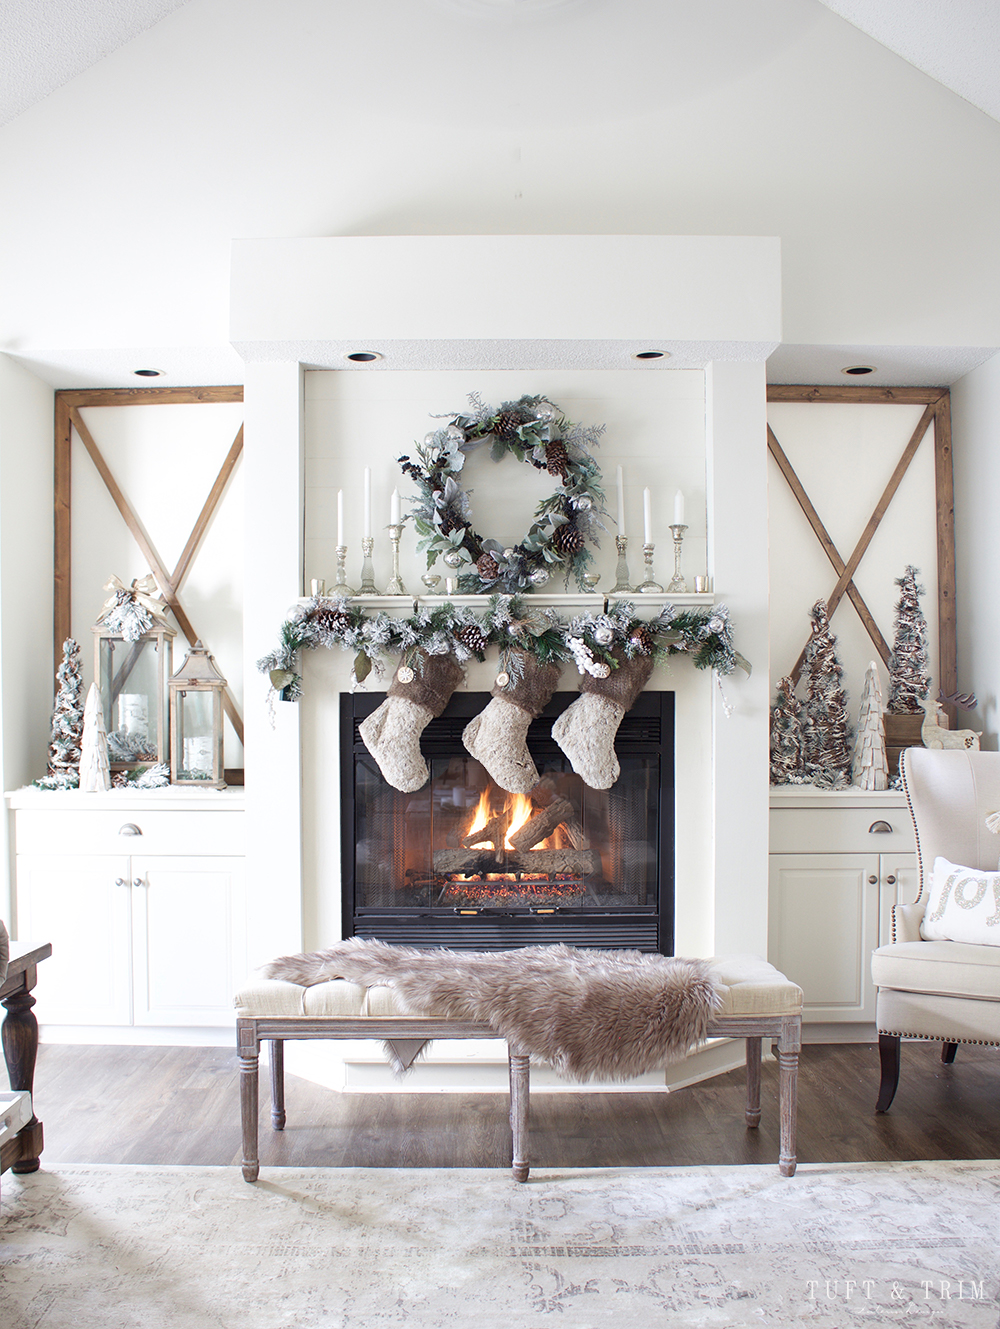 7 chic christmas decorations for the most memorable holiday 07 chic christmas decorations 7 chic christmas - Chic Christmas Decorations